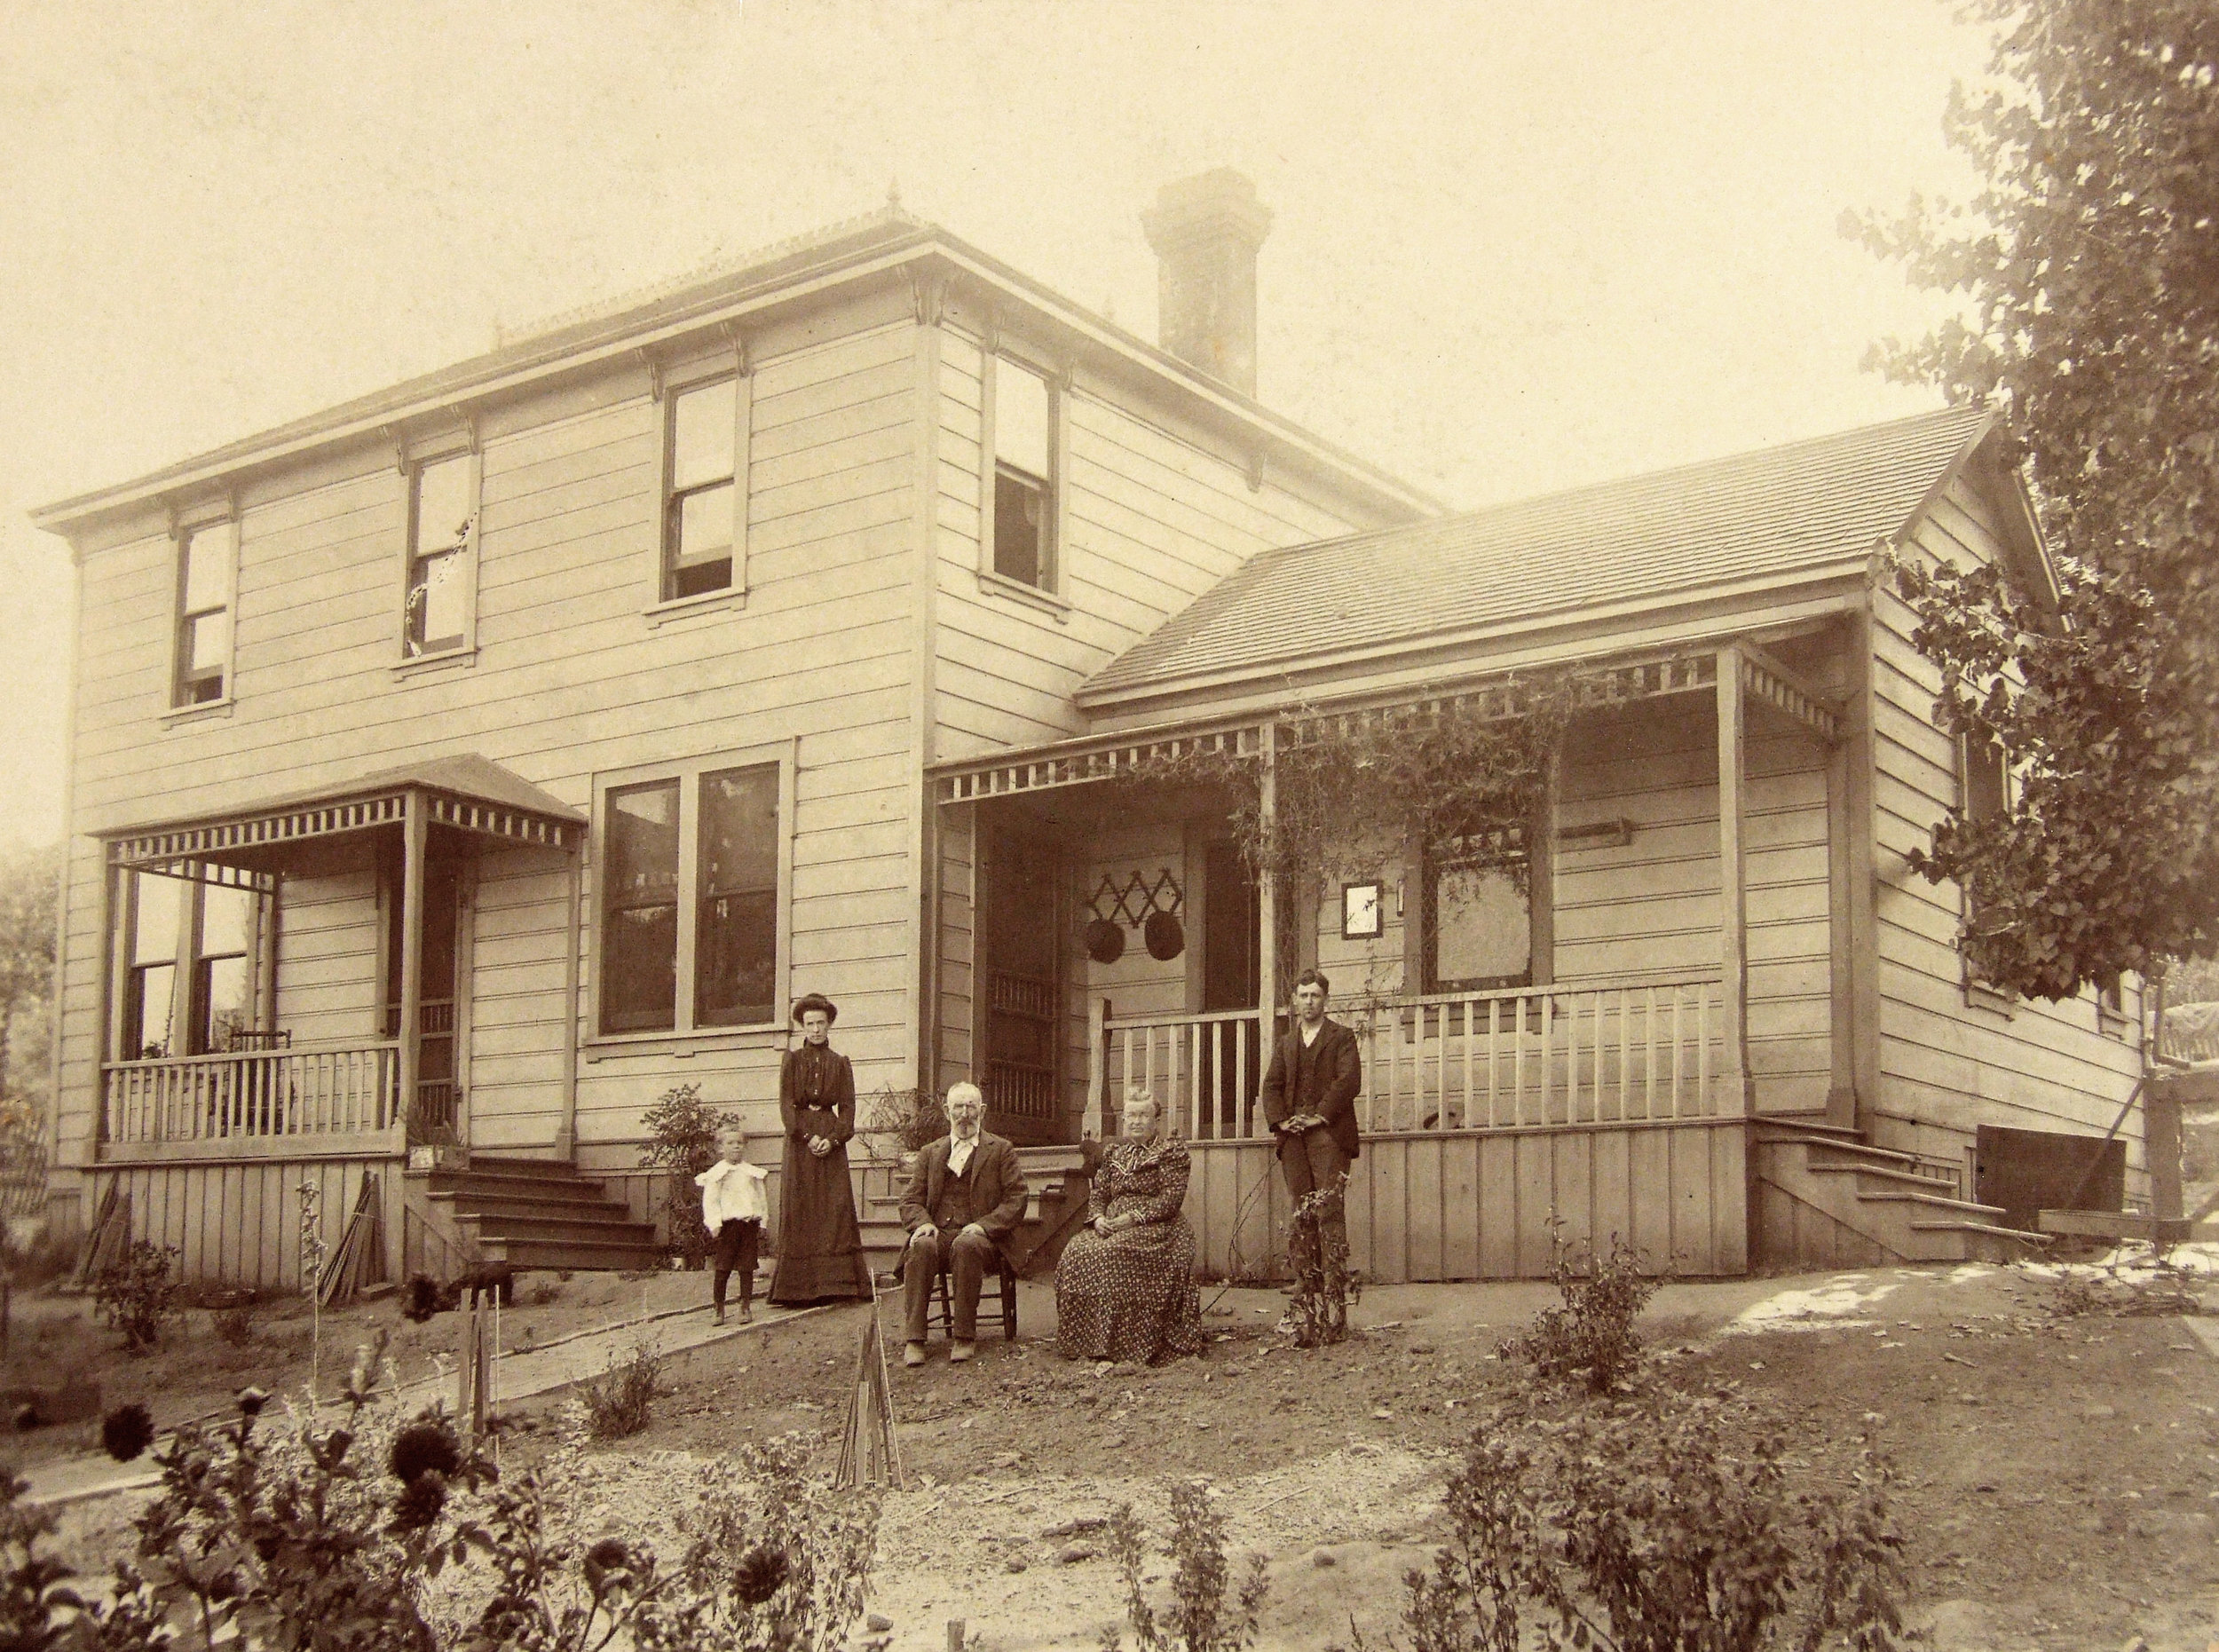 The York family in 1903 – Andrew York is in the middle – standing in front of the original York Mountain homestead, which we have completely restored as a home for our family and friends